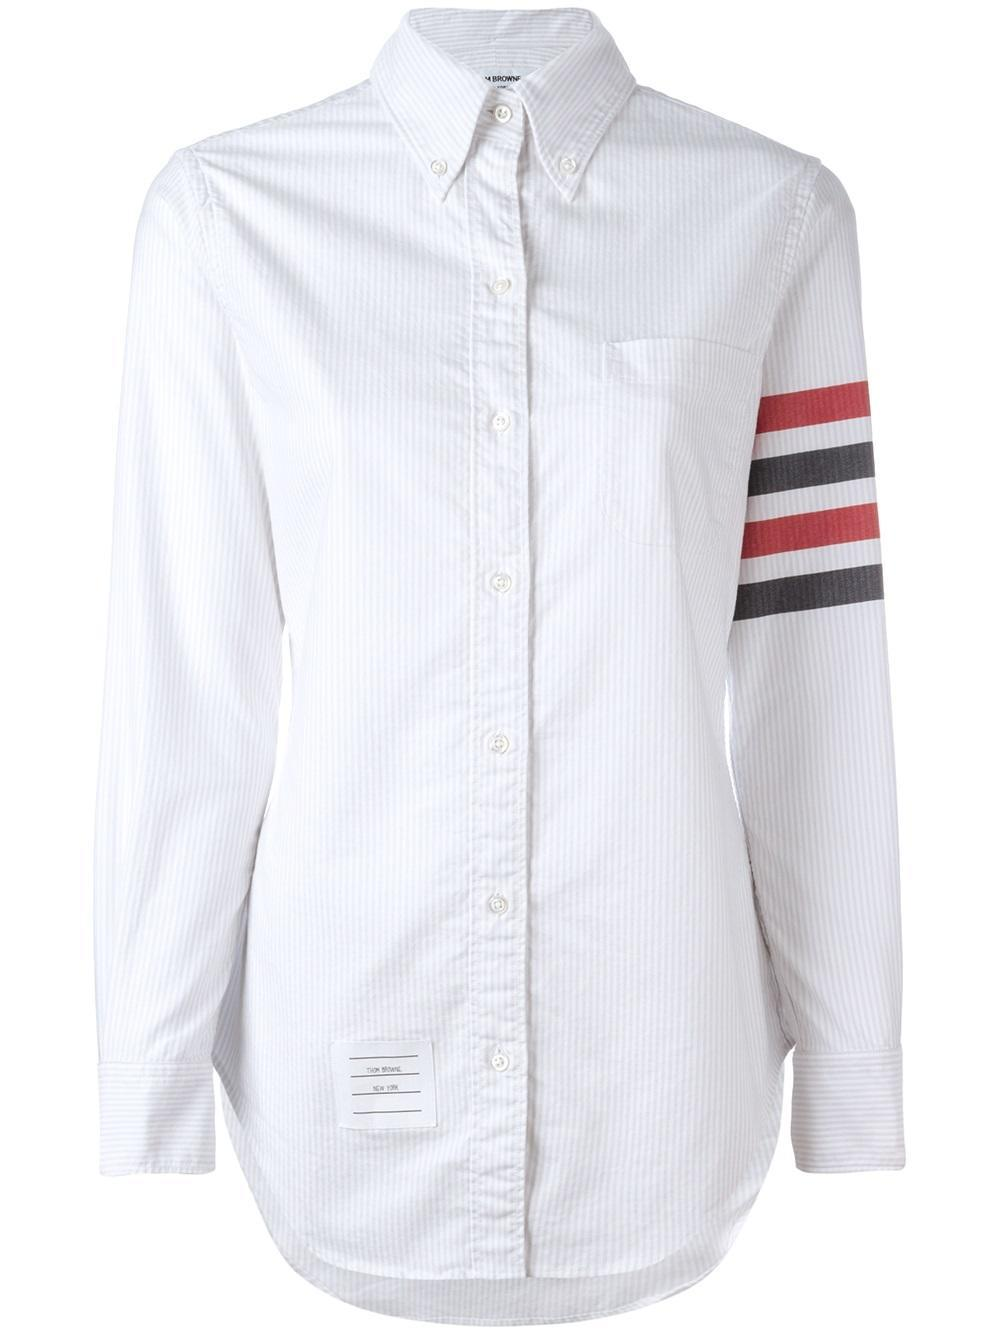 Thom browne color block shirt in white lyst for Thom browne white shirt